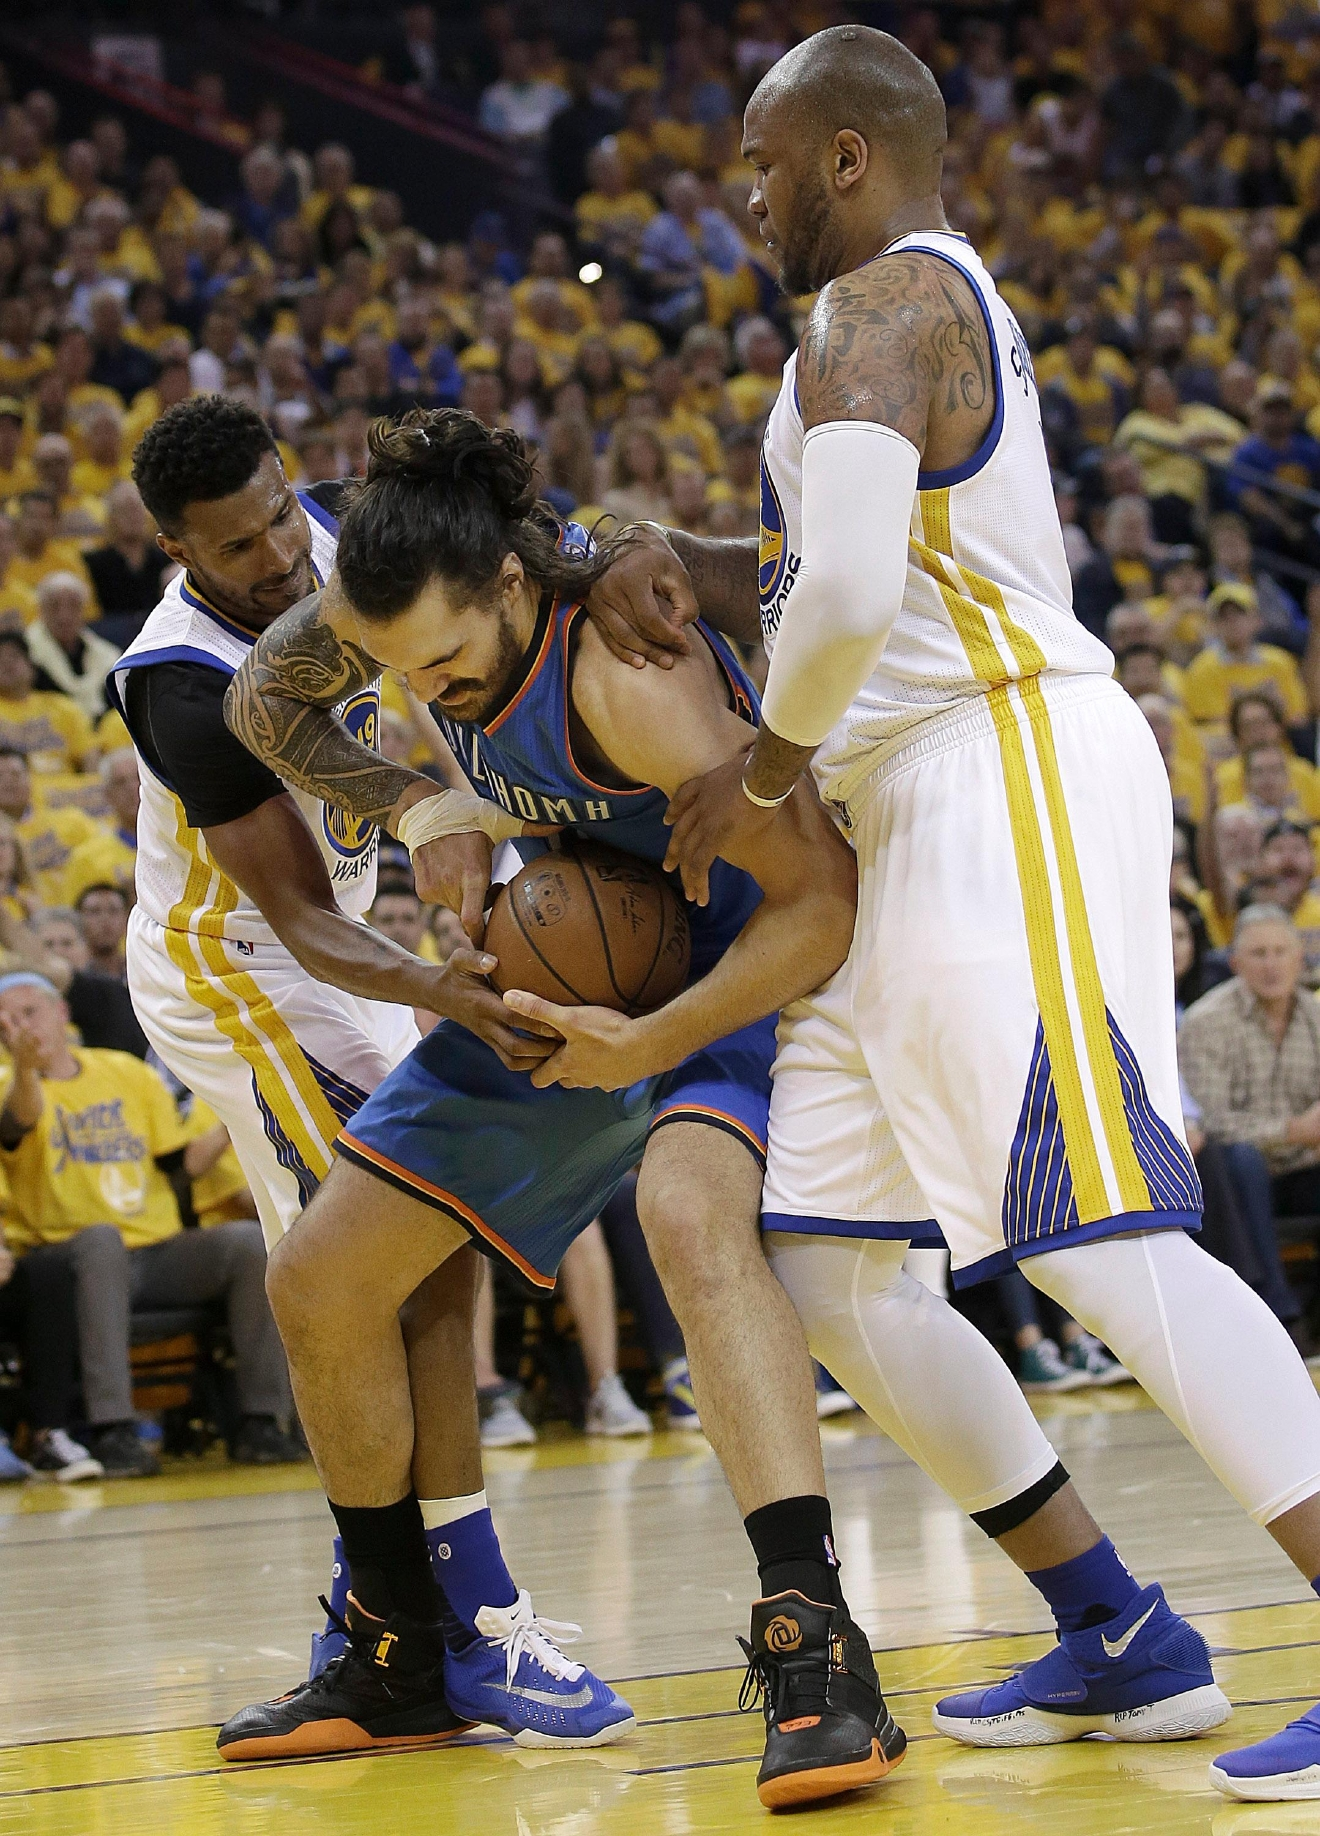 Oklahoma City Thunder center Steven Adams, center, holds onto the ball as he is defended by Golden State Warriors guard Leandro Barbosa, left, and forward Marreese Speights during the first half of Game 5 of the NBA basketball Western Conference finals in Oakland, Calif., Thursday, May 26, 2016. (AP Photo/Marcio Jose Sanchez)